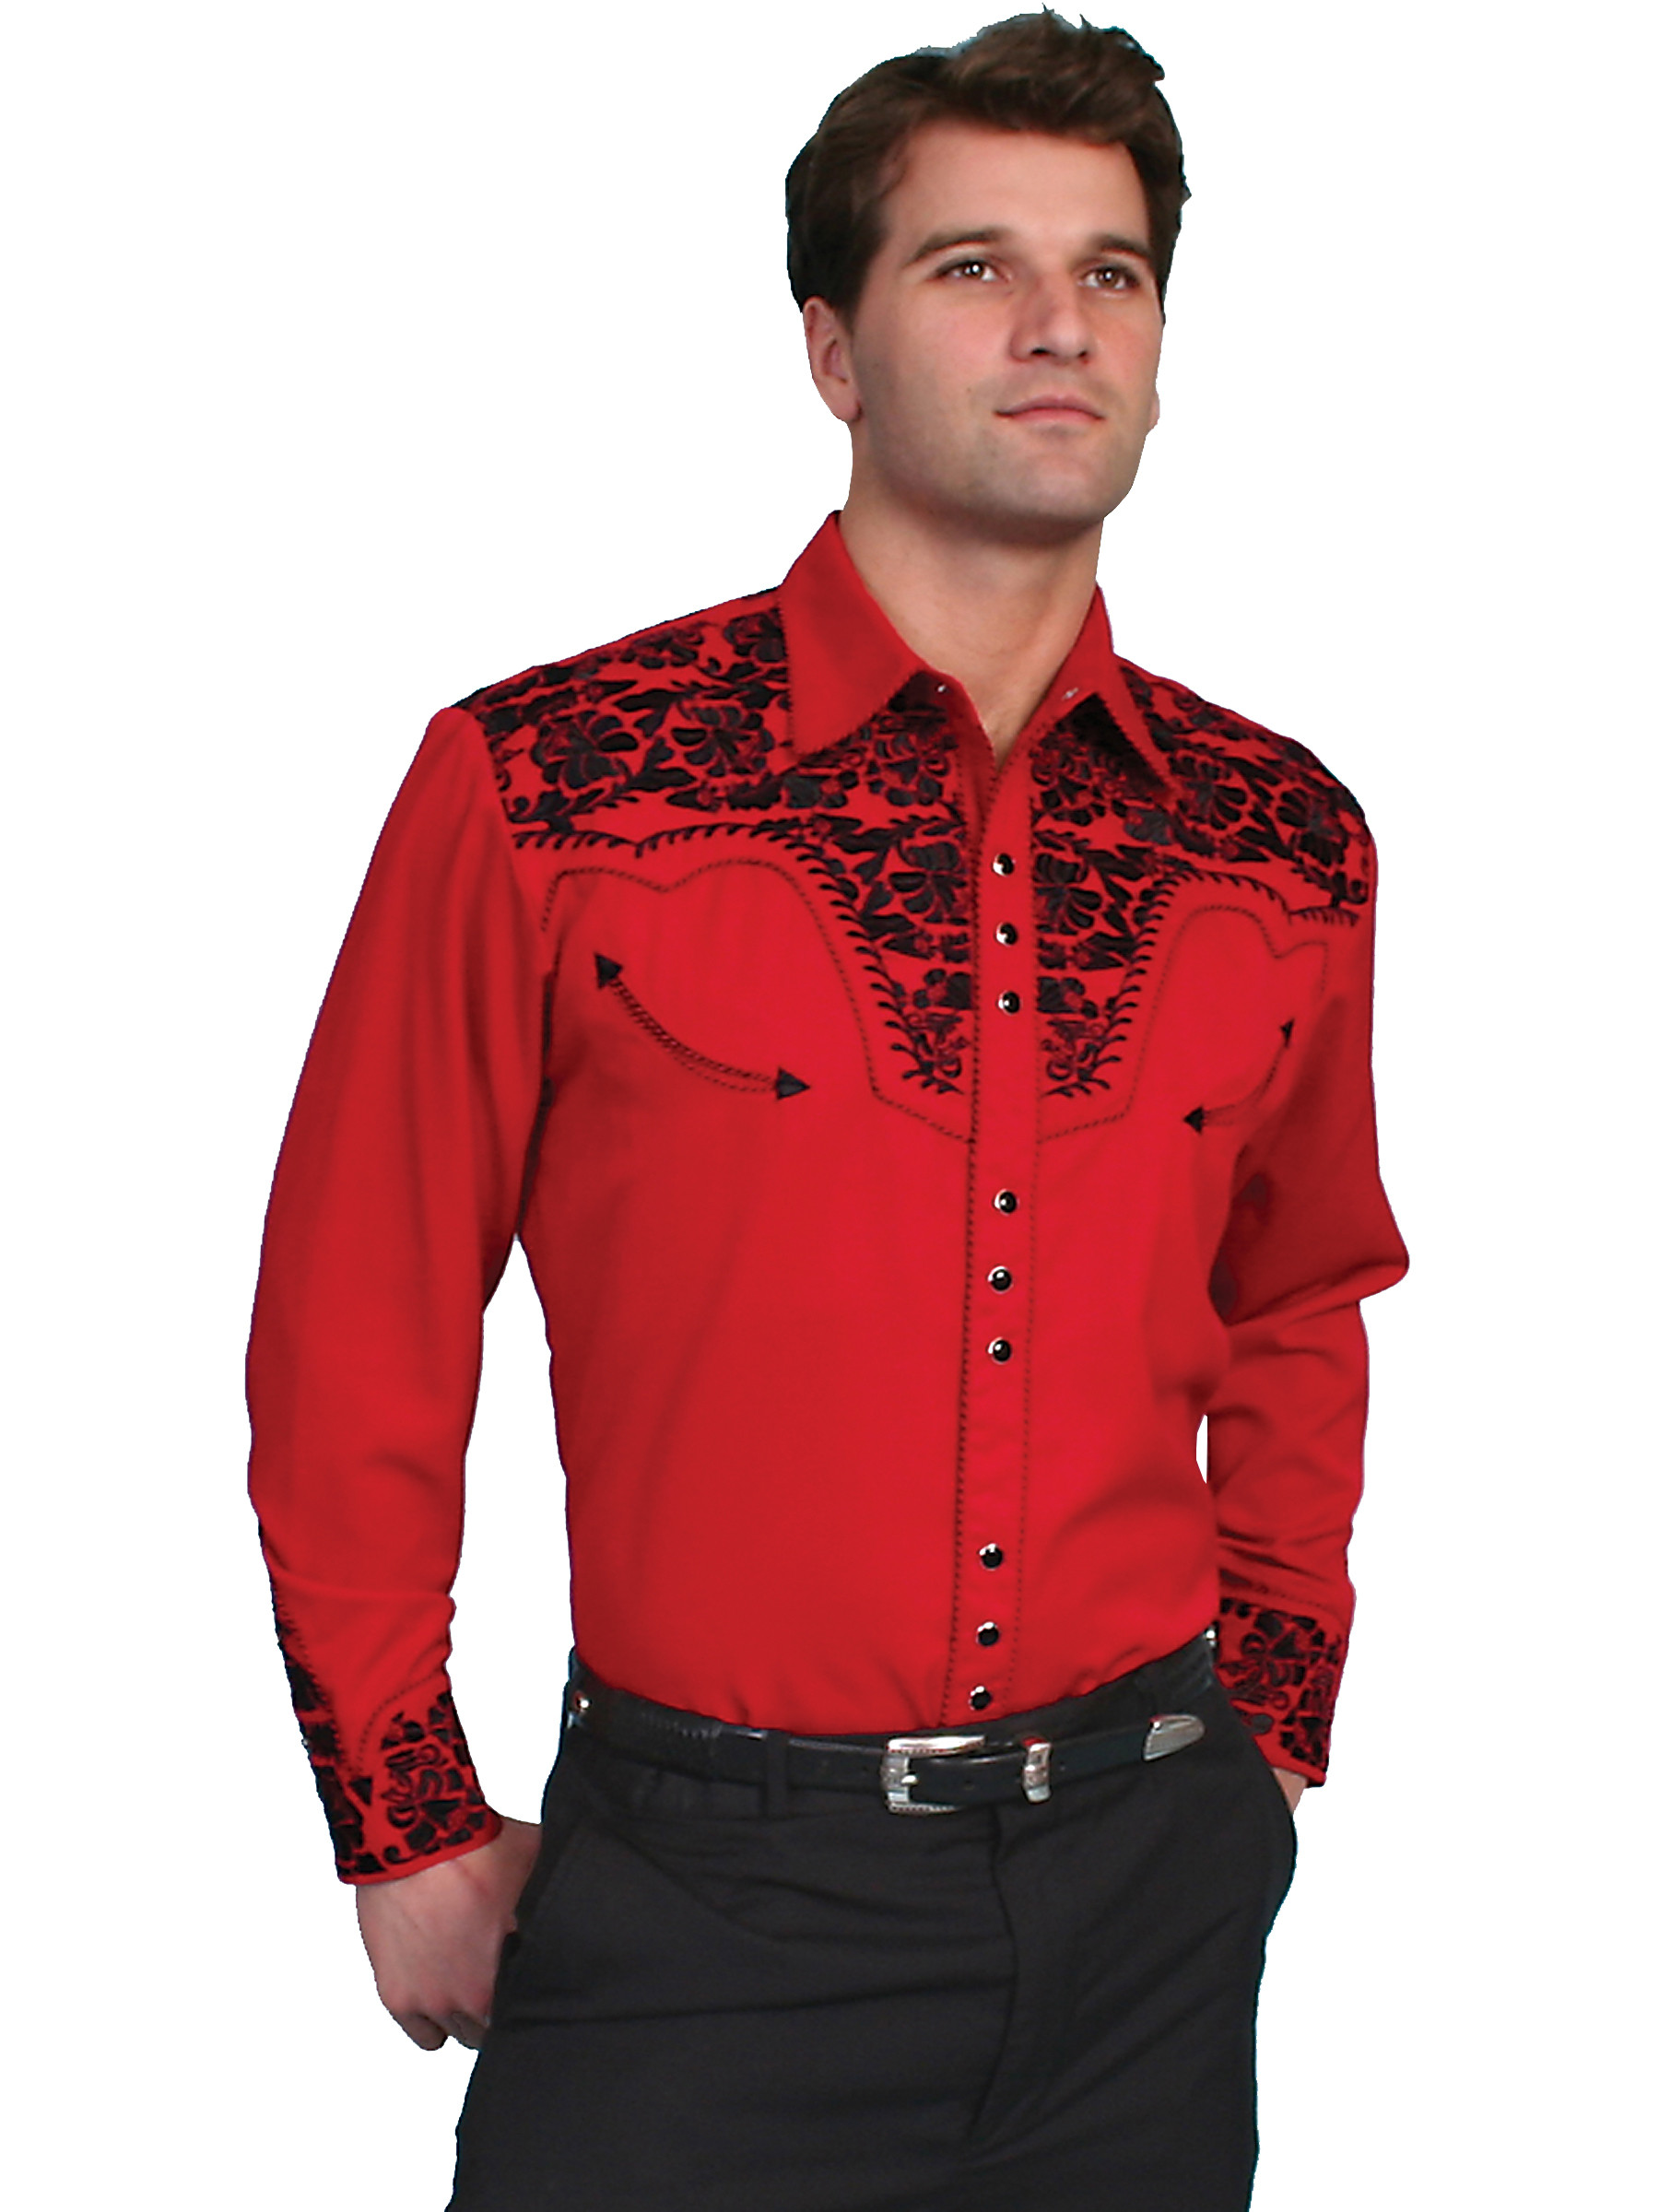 Men's Western Shirts - Sheplers24/7 Customer Service· Free Shipping· Trusted Since · Shop Our Huge Selection8,+ followers on Twitter.